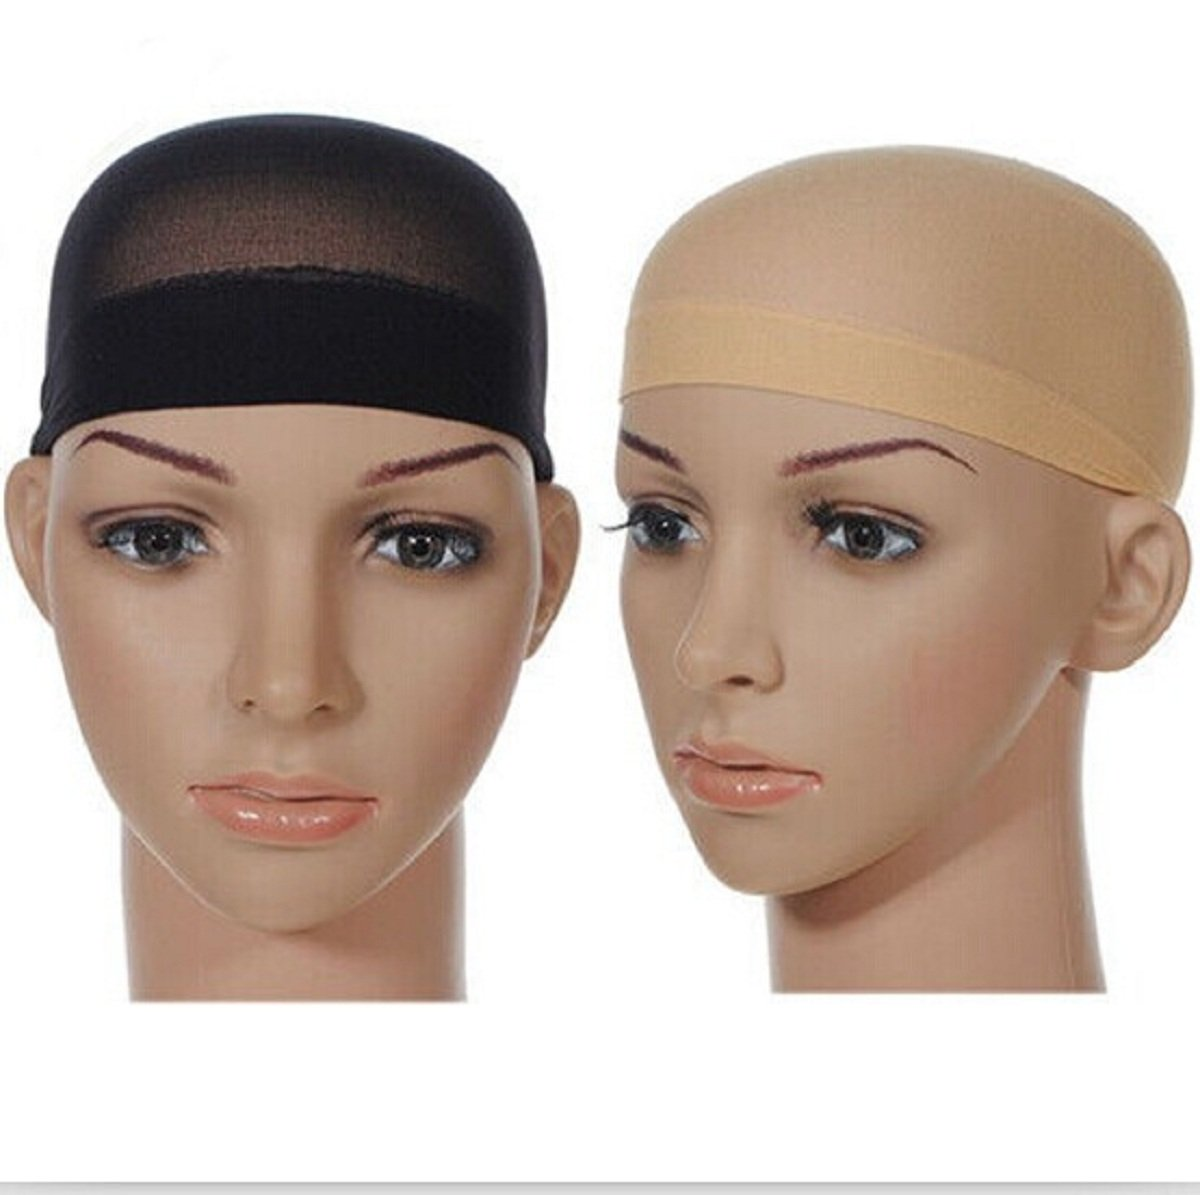 2 Pack LiPing Long Wig Caps, Black Mesh Net Wig Cap, Open End Wig Cap for Long and Short Hair,Elastic Hair Mesh Net Open End